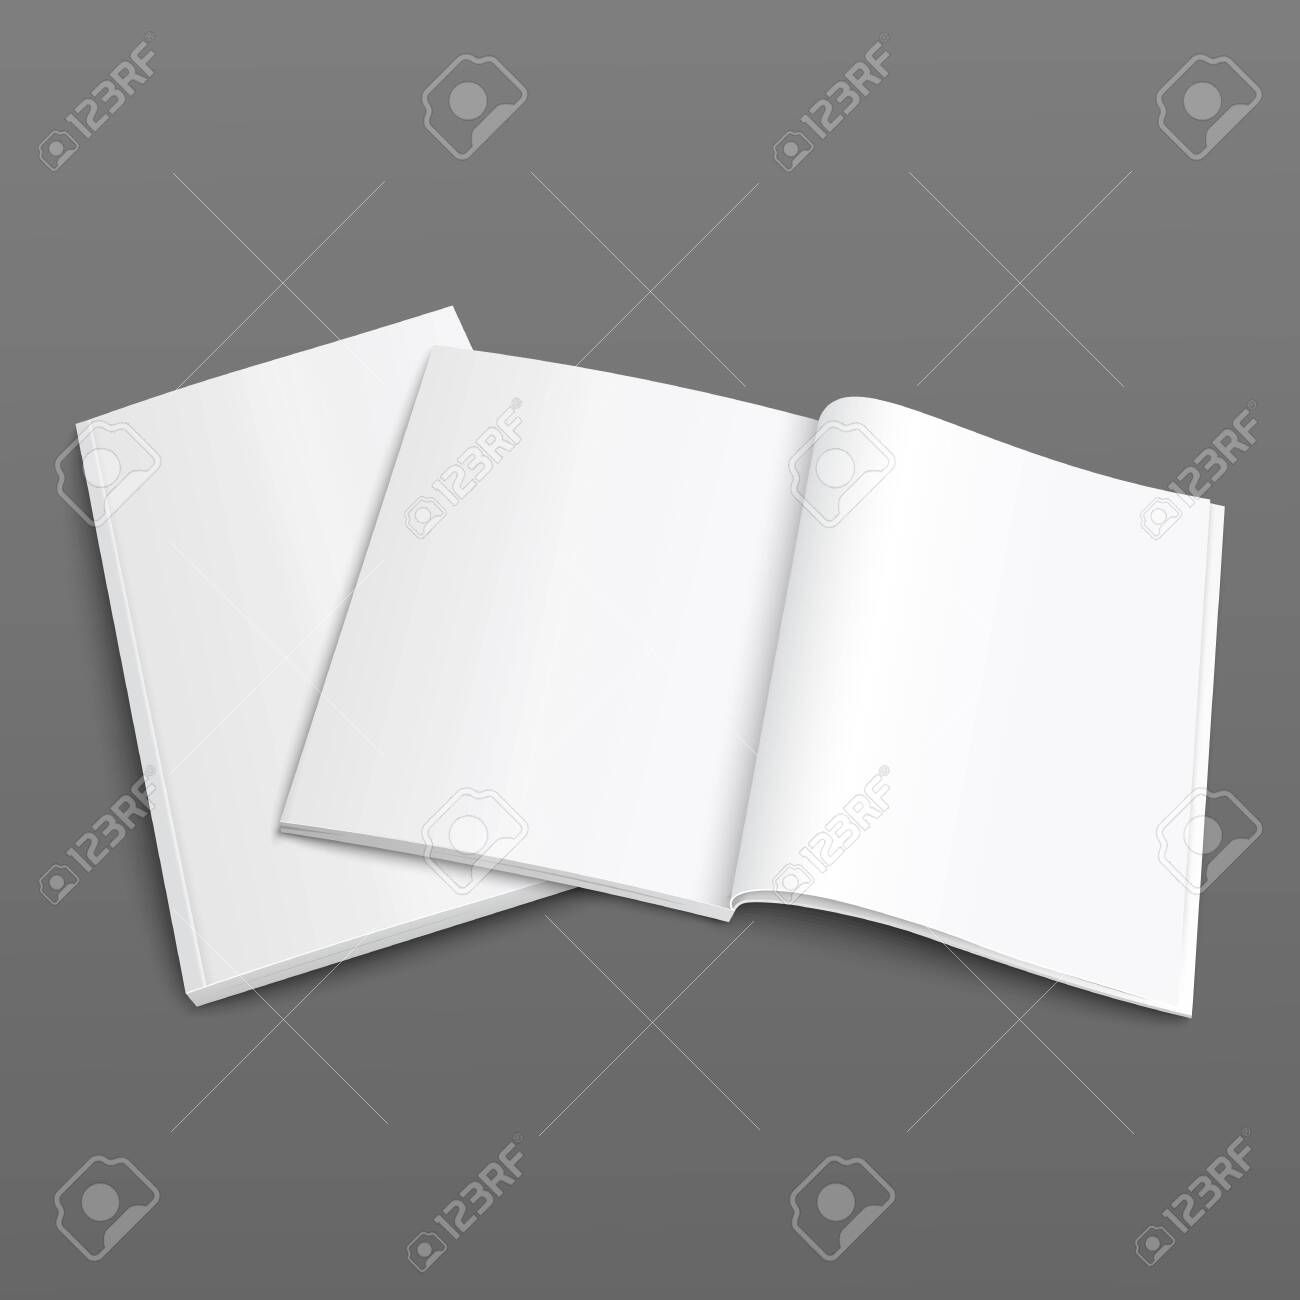 Realistic template and mock up paper magazine with empty and blank open pages. White realistic blank magazine template vector illustration. - 147990396